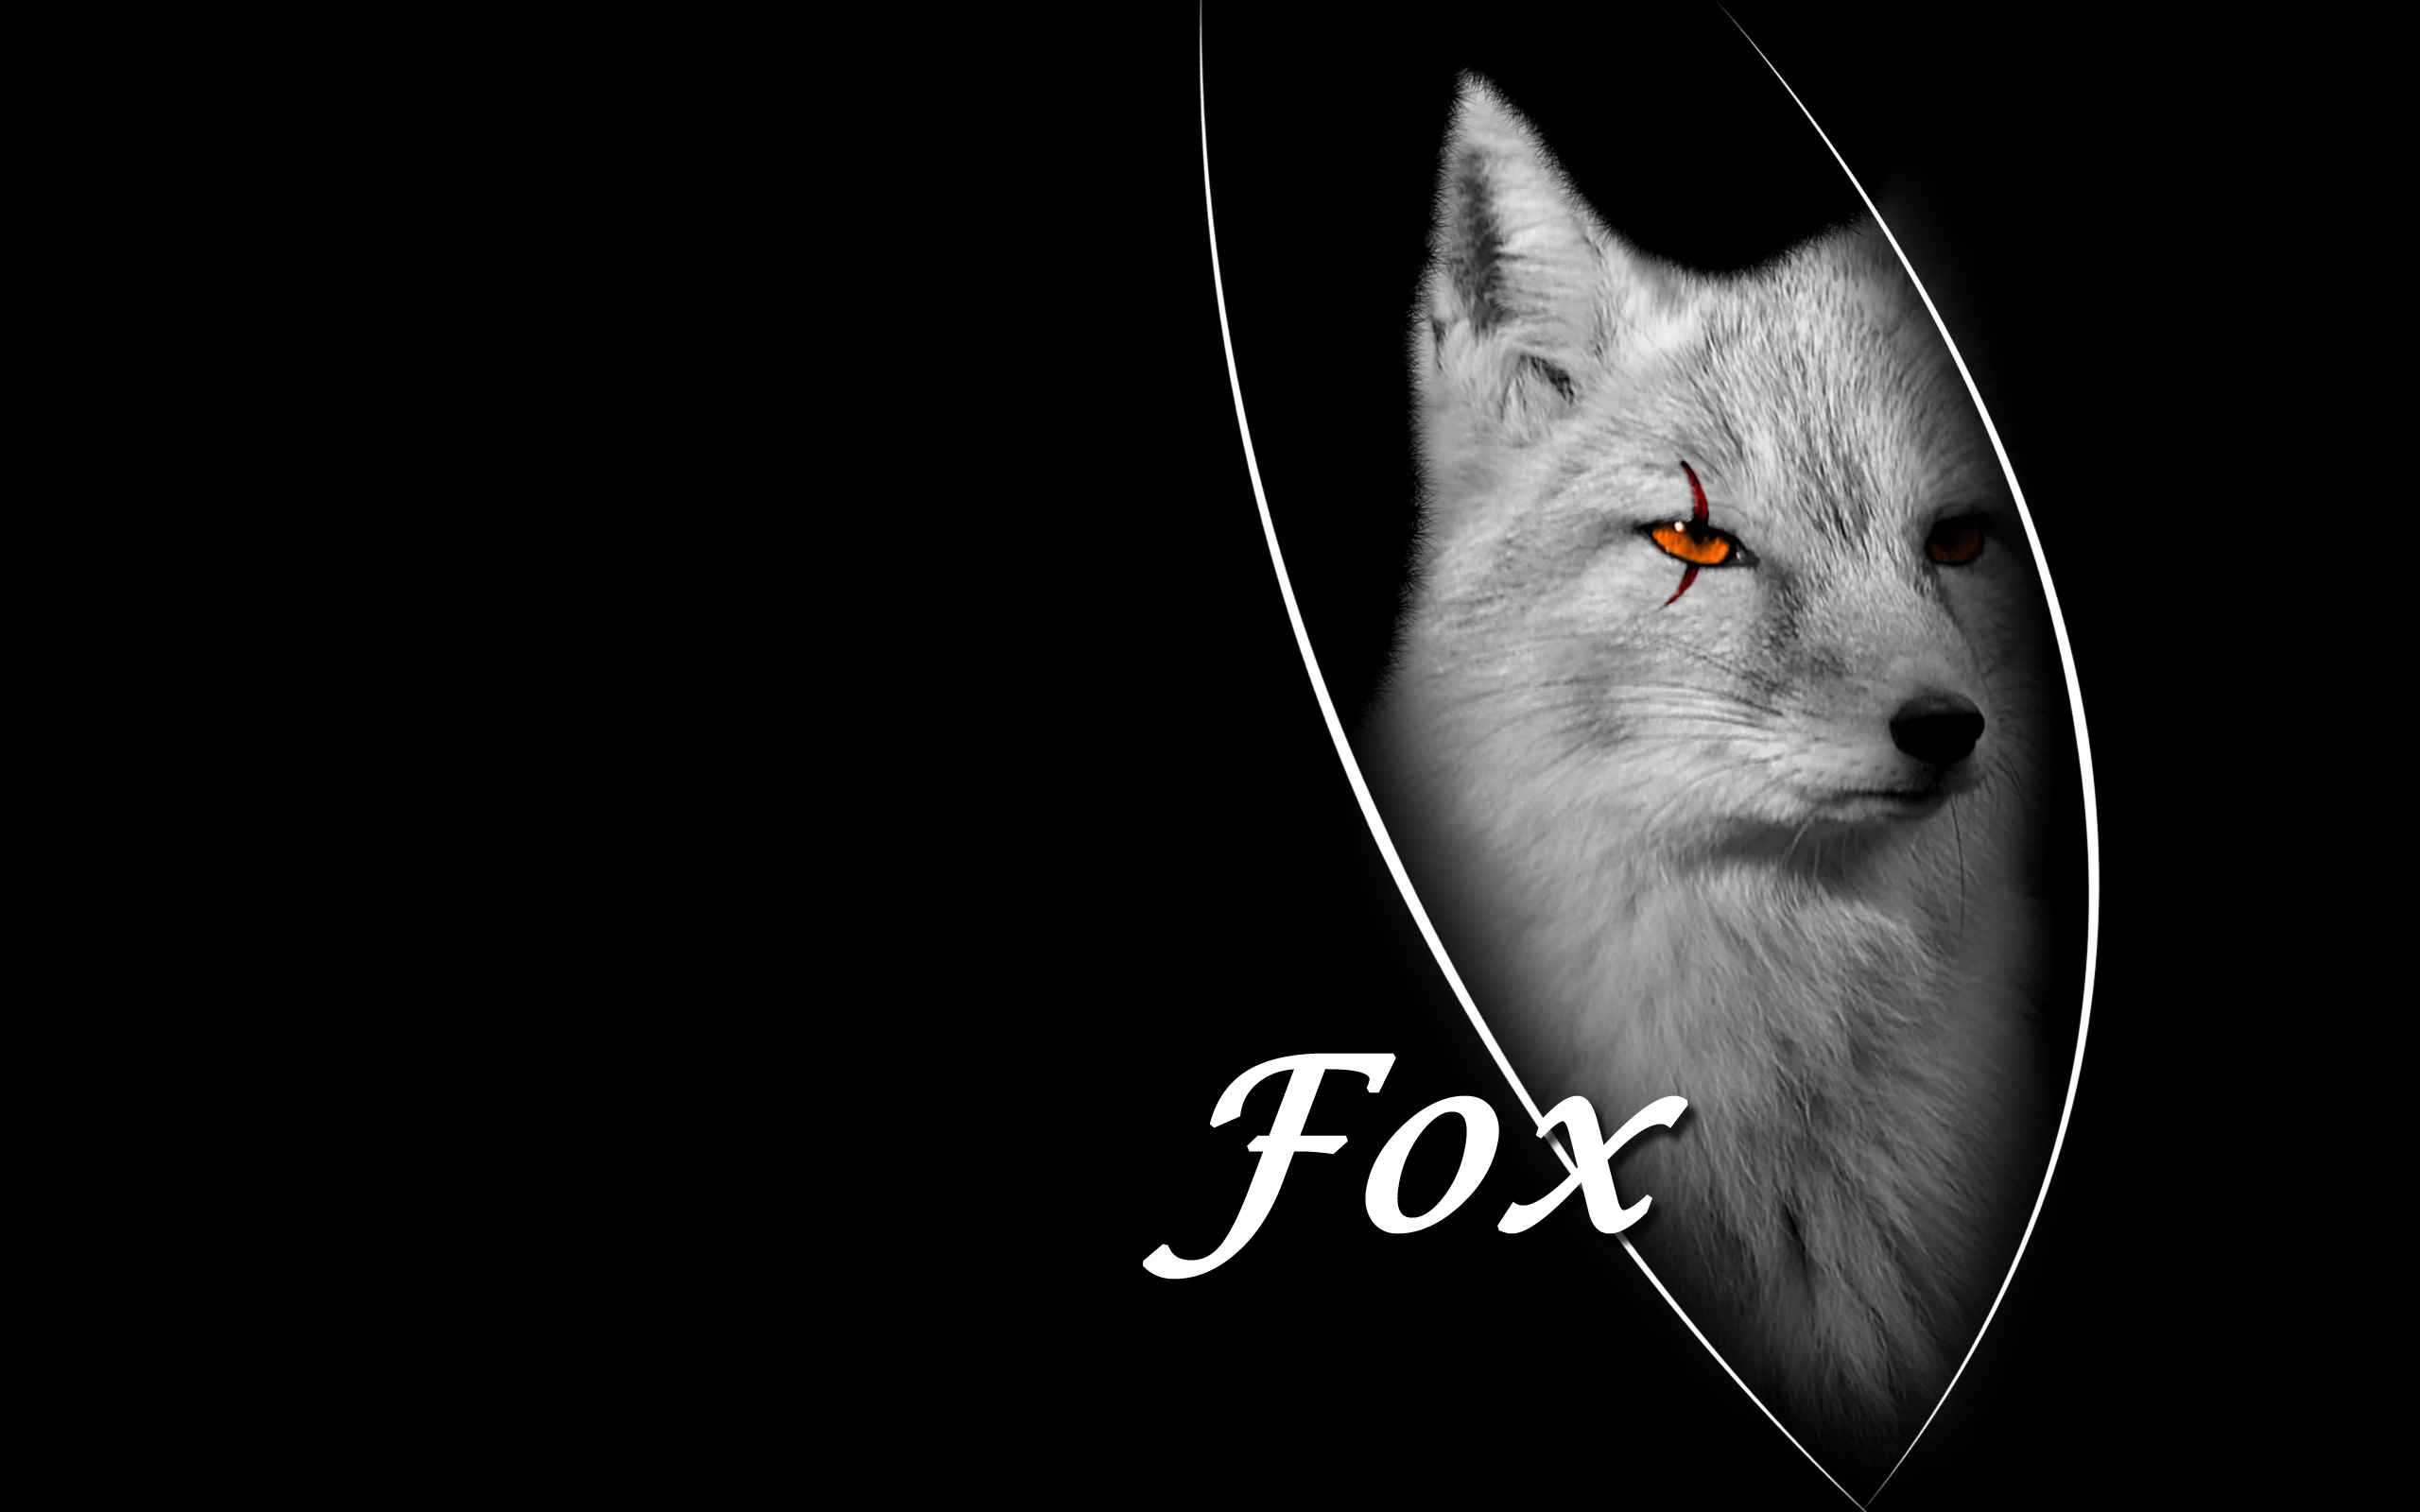 Cool Fox Wallpaper